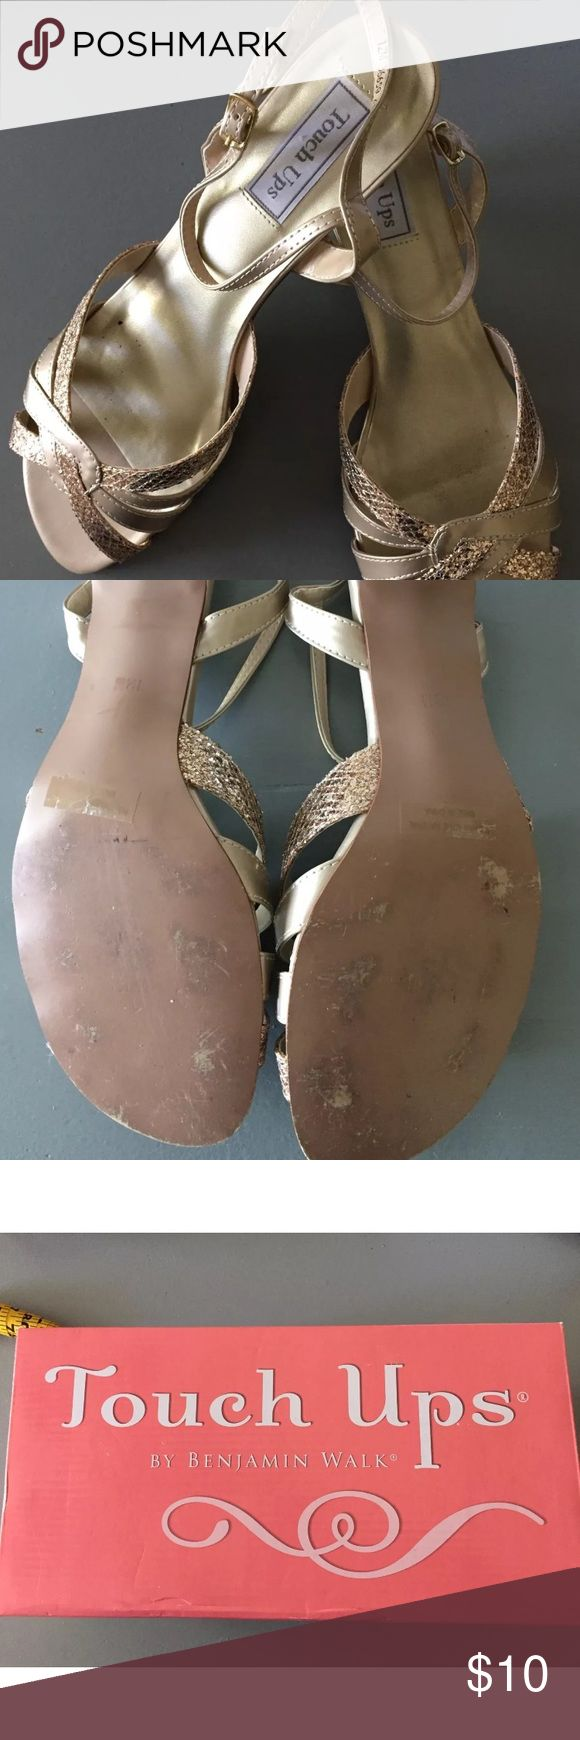 Gold strappy sandals in hard to find size 12 Worn once to a wedding.  On ground and concrete so the bottoms do show some wear.  Tops are in perfect condition.  The inside sole does show some rub off of the color at the ball of the foot.  I think this is pretty normal on metallic colored shoes. 1 3/4 inch heals. Please see pics for measurements.  The original owner wears a size 11, could not find the right color for her dress in an 11 and purchased these.  Because they are sandals with…